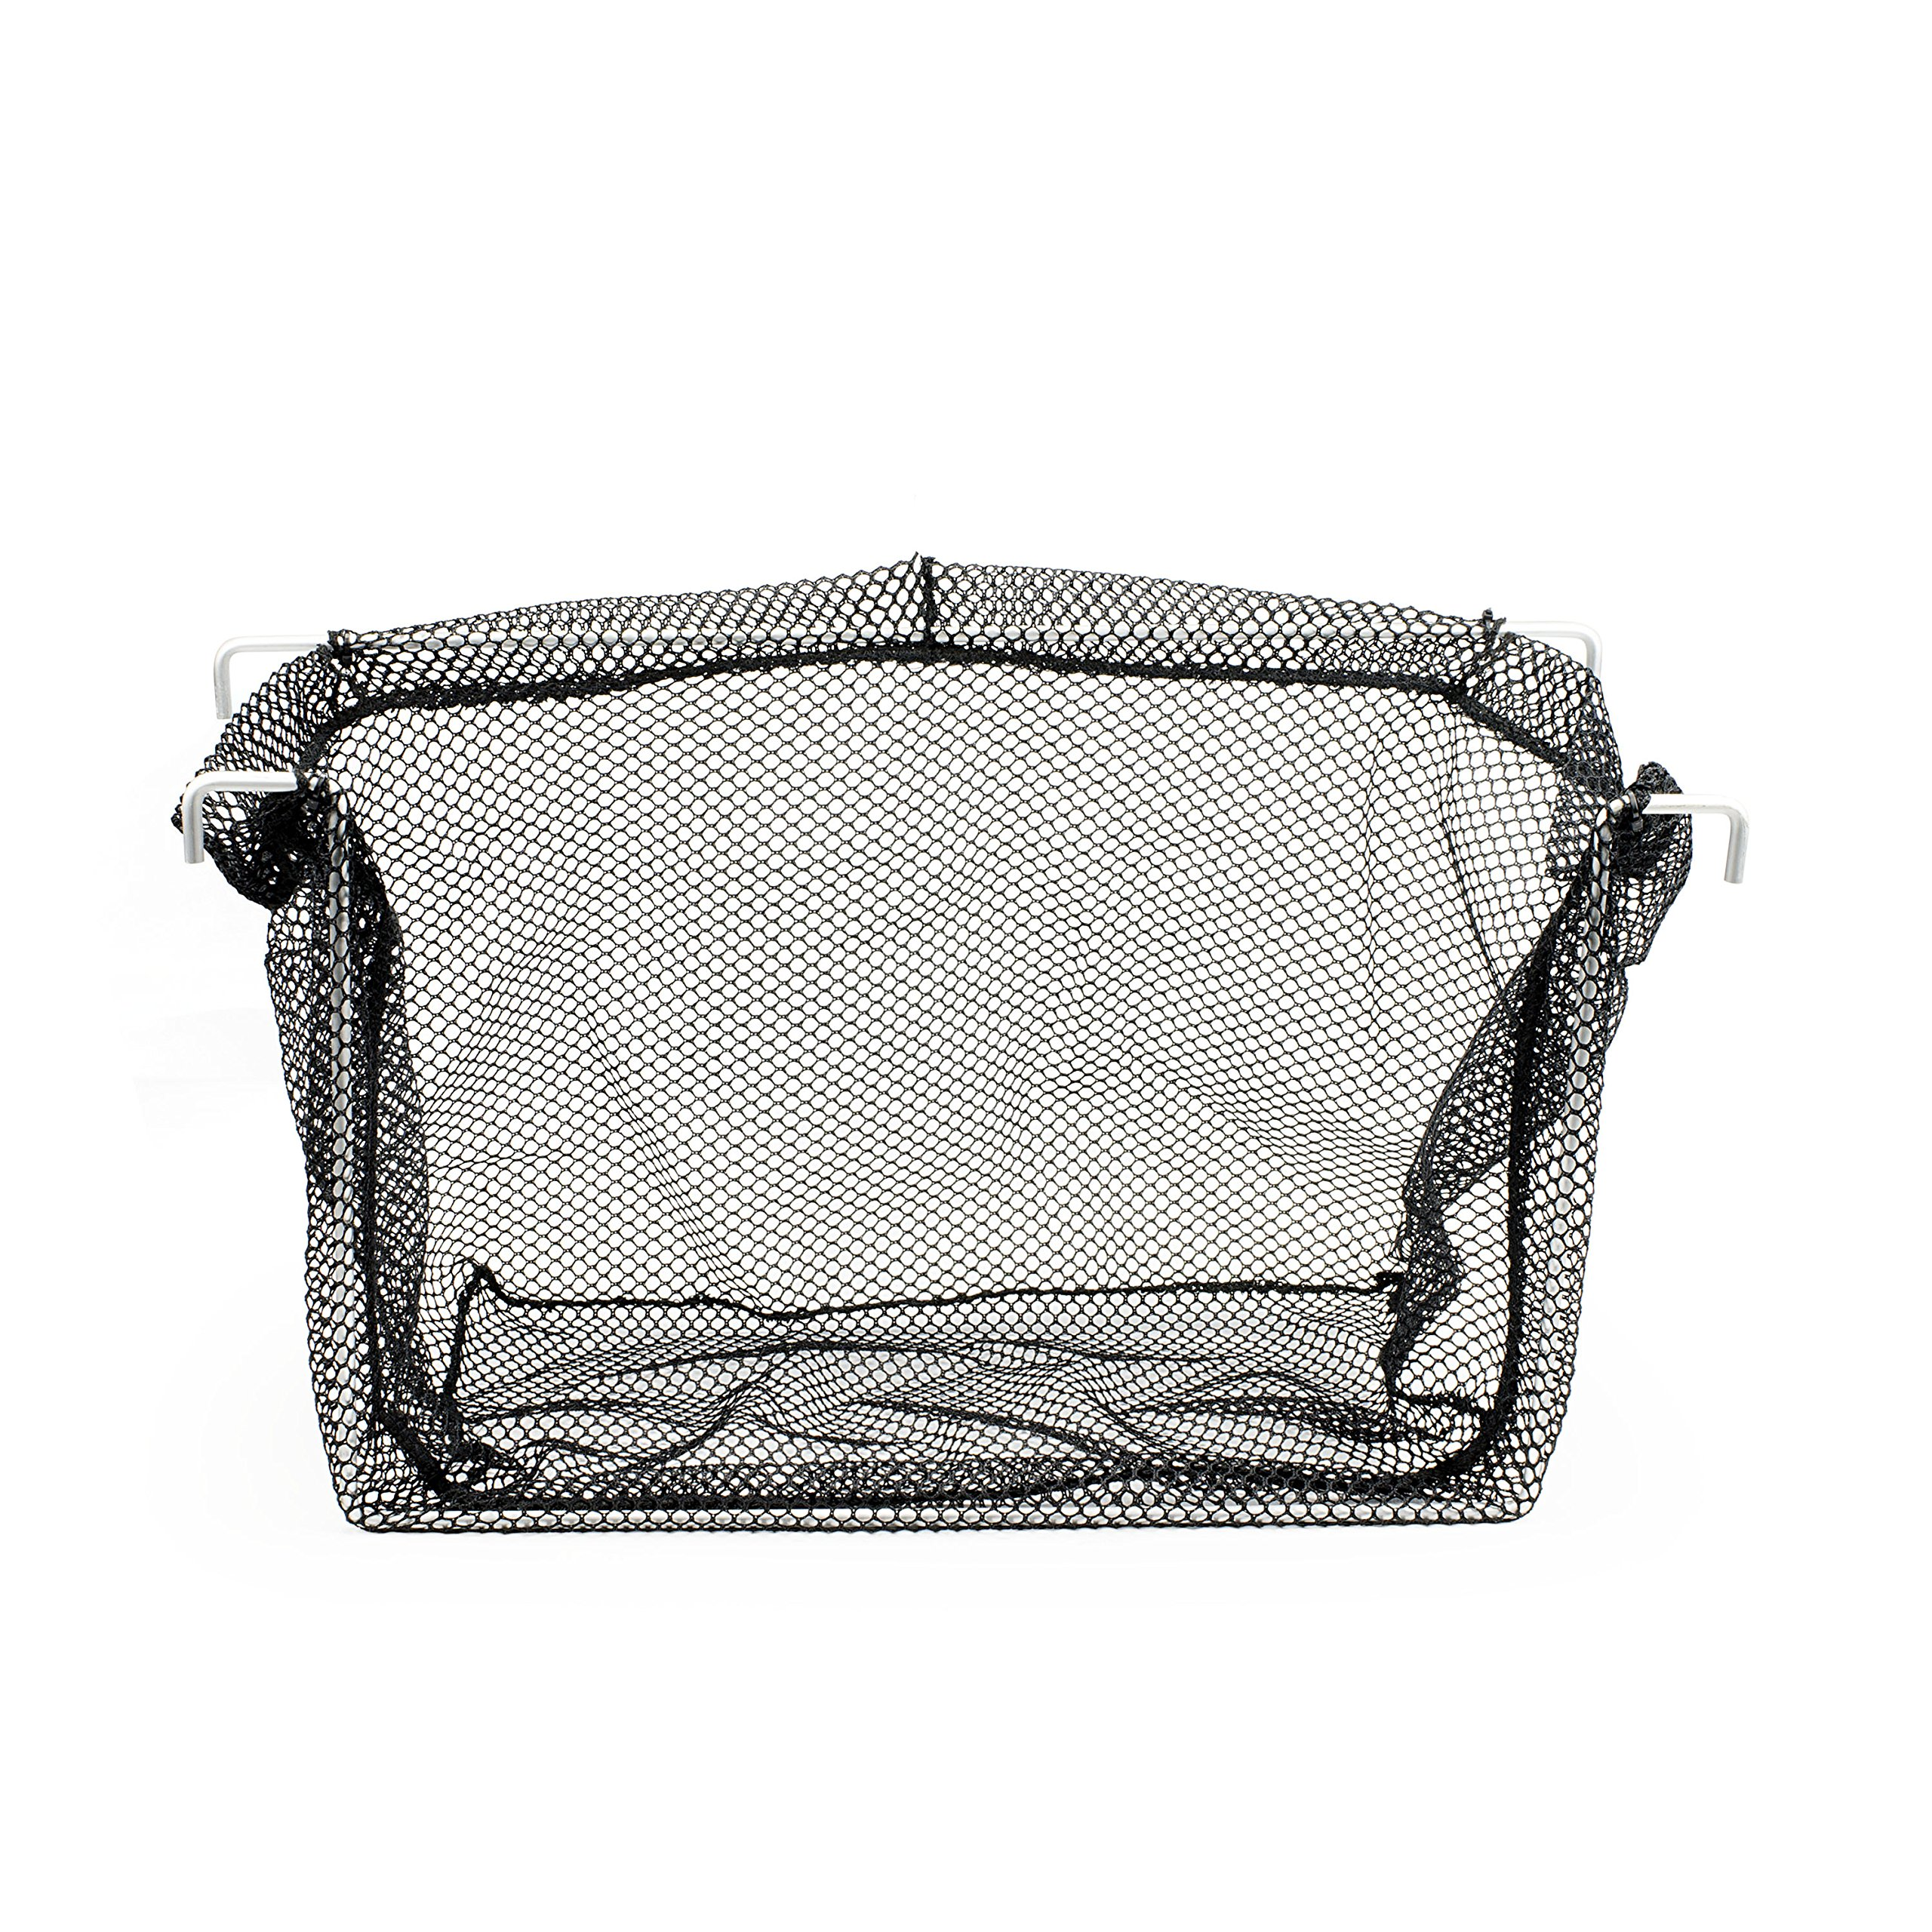 Aquascape Grande Skimmer Debris Net for Pond and Water Garden | 29071 by Aquascape